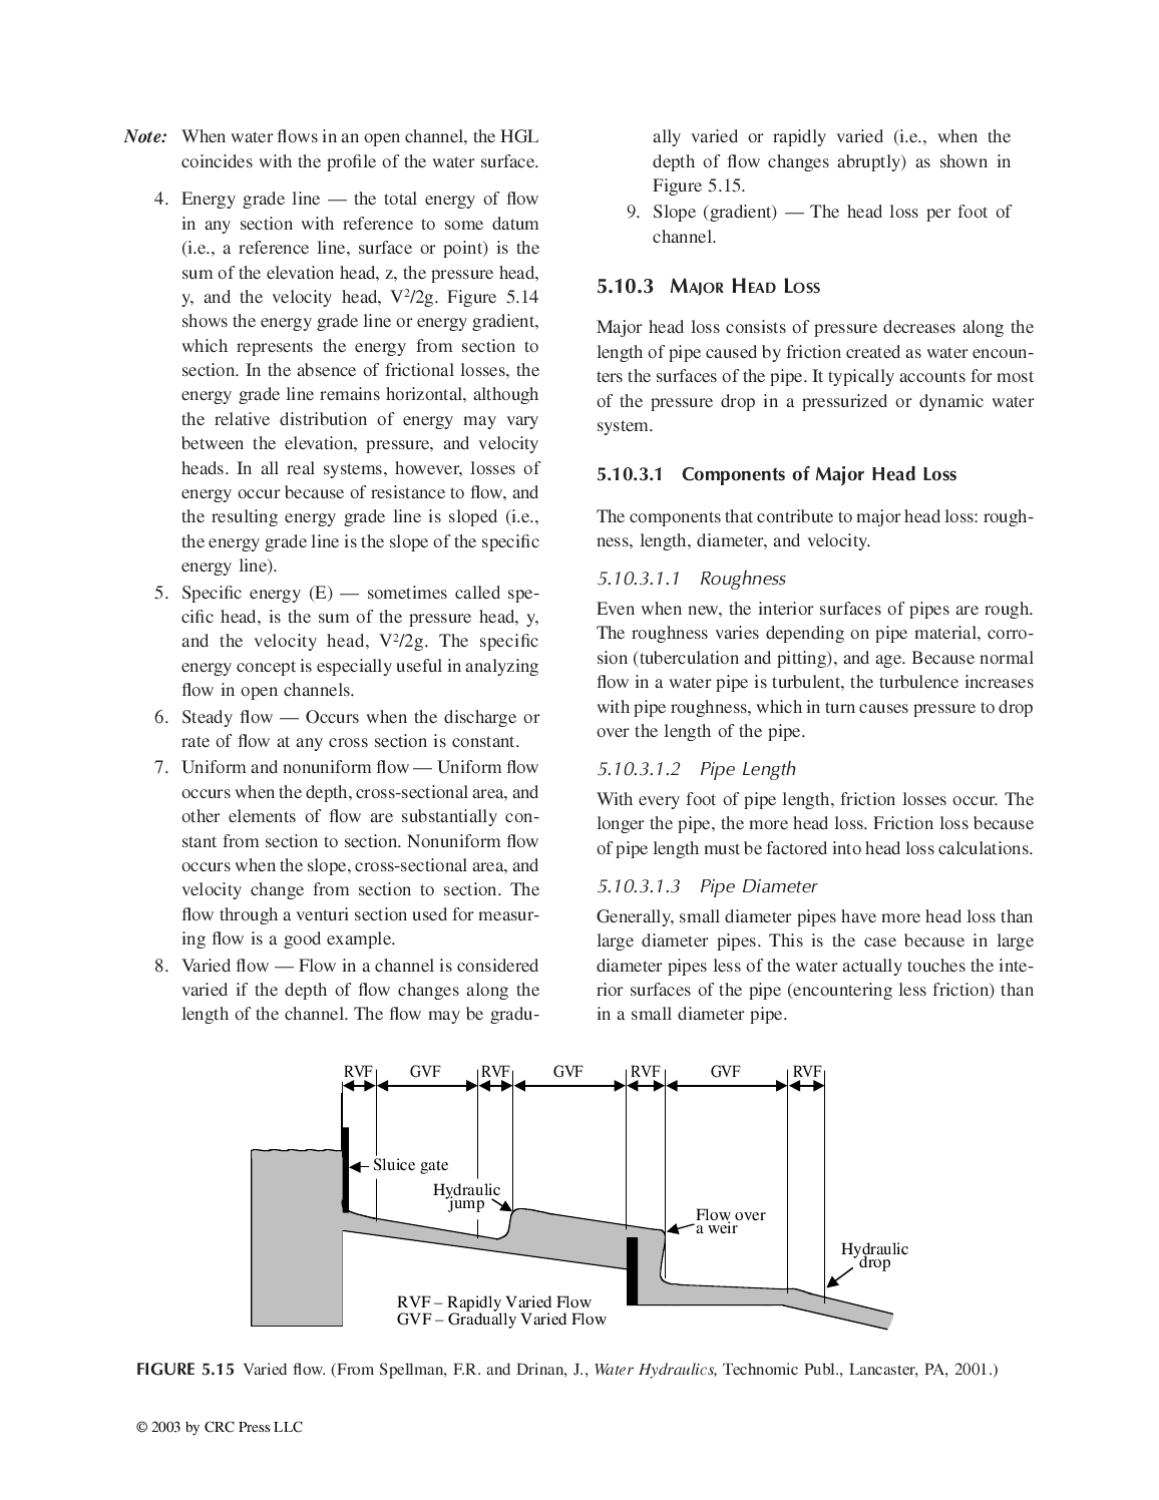 The practice and study of water hydraulics / Hidraulicki